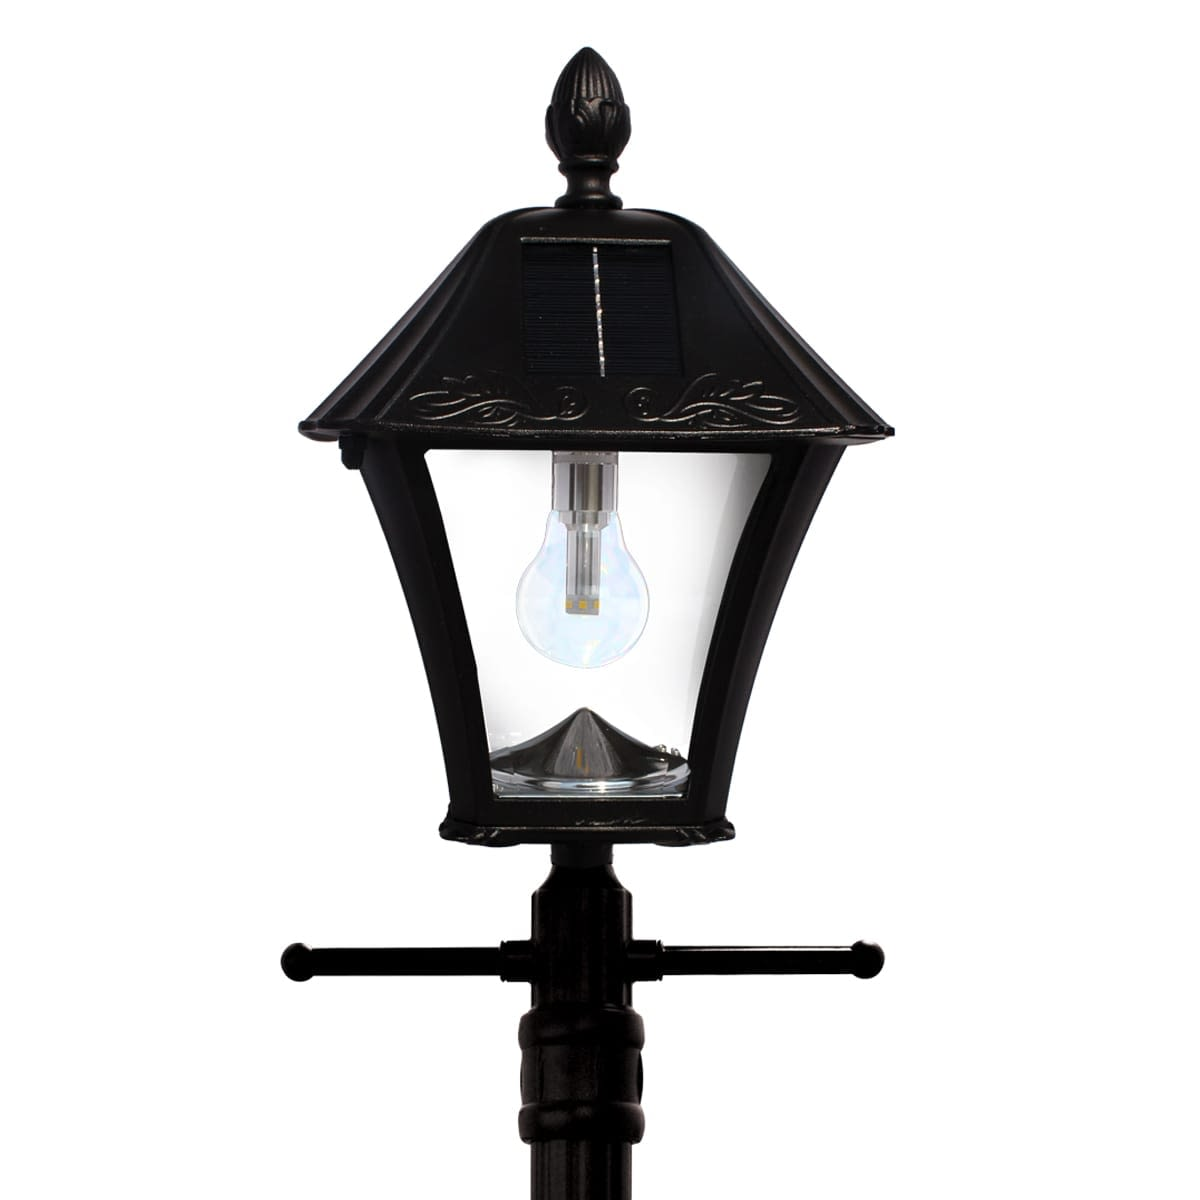 Gama Sonic Baytown Bulb Solar Lamp Post EZ-Anchor Planter GS-106B-PLSG by Gama Sonic 03